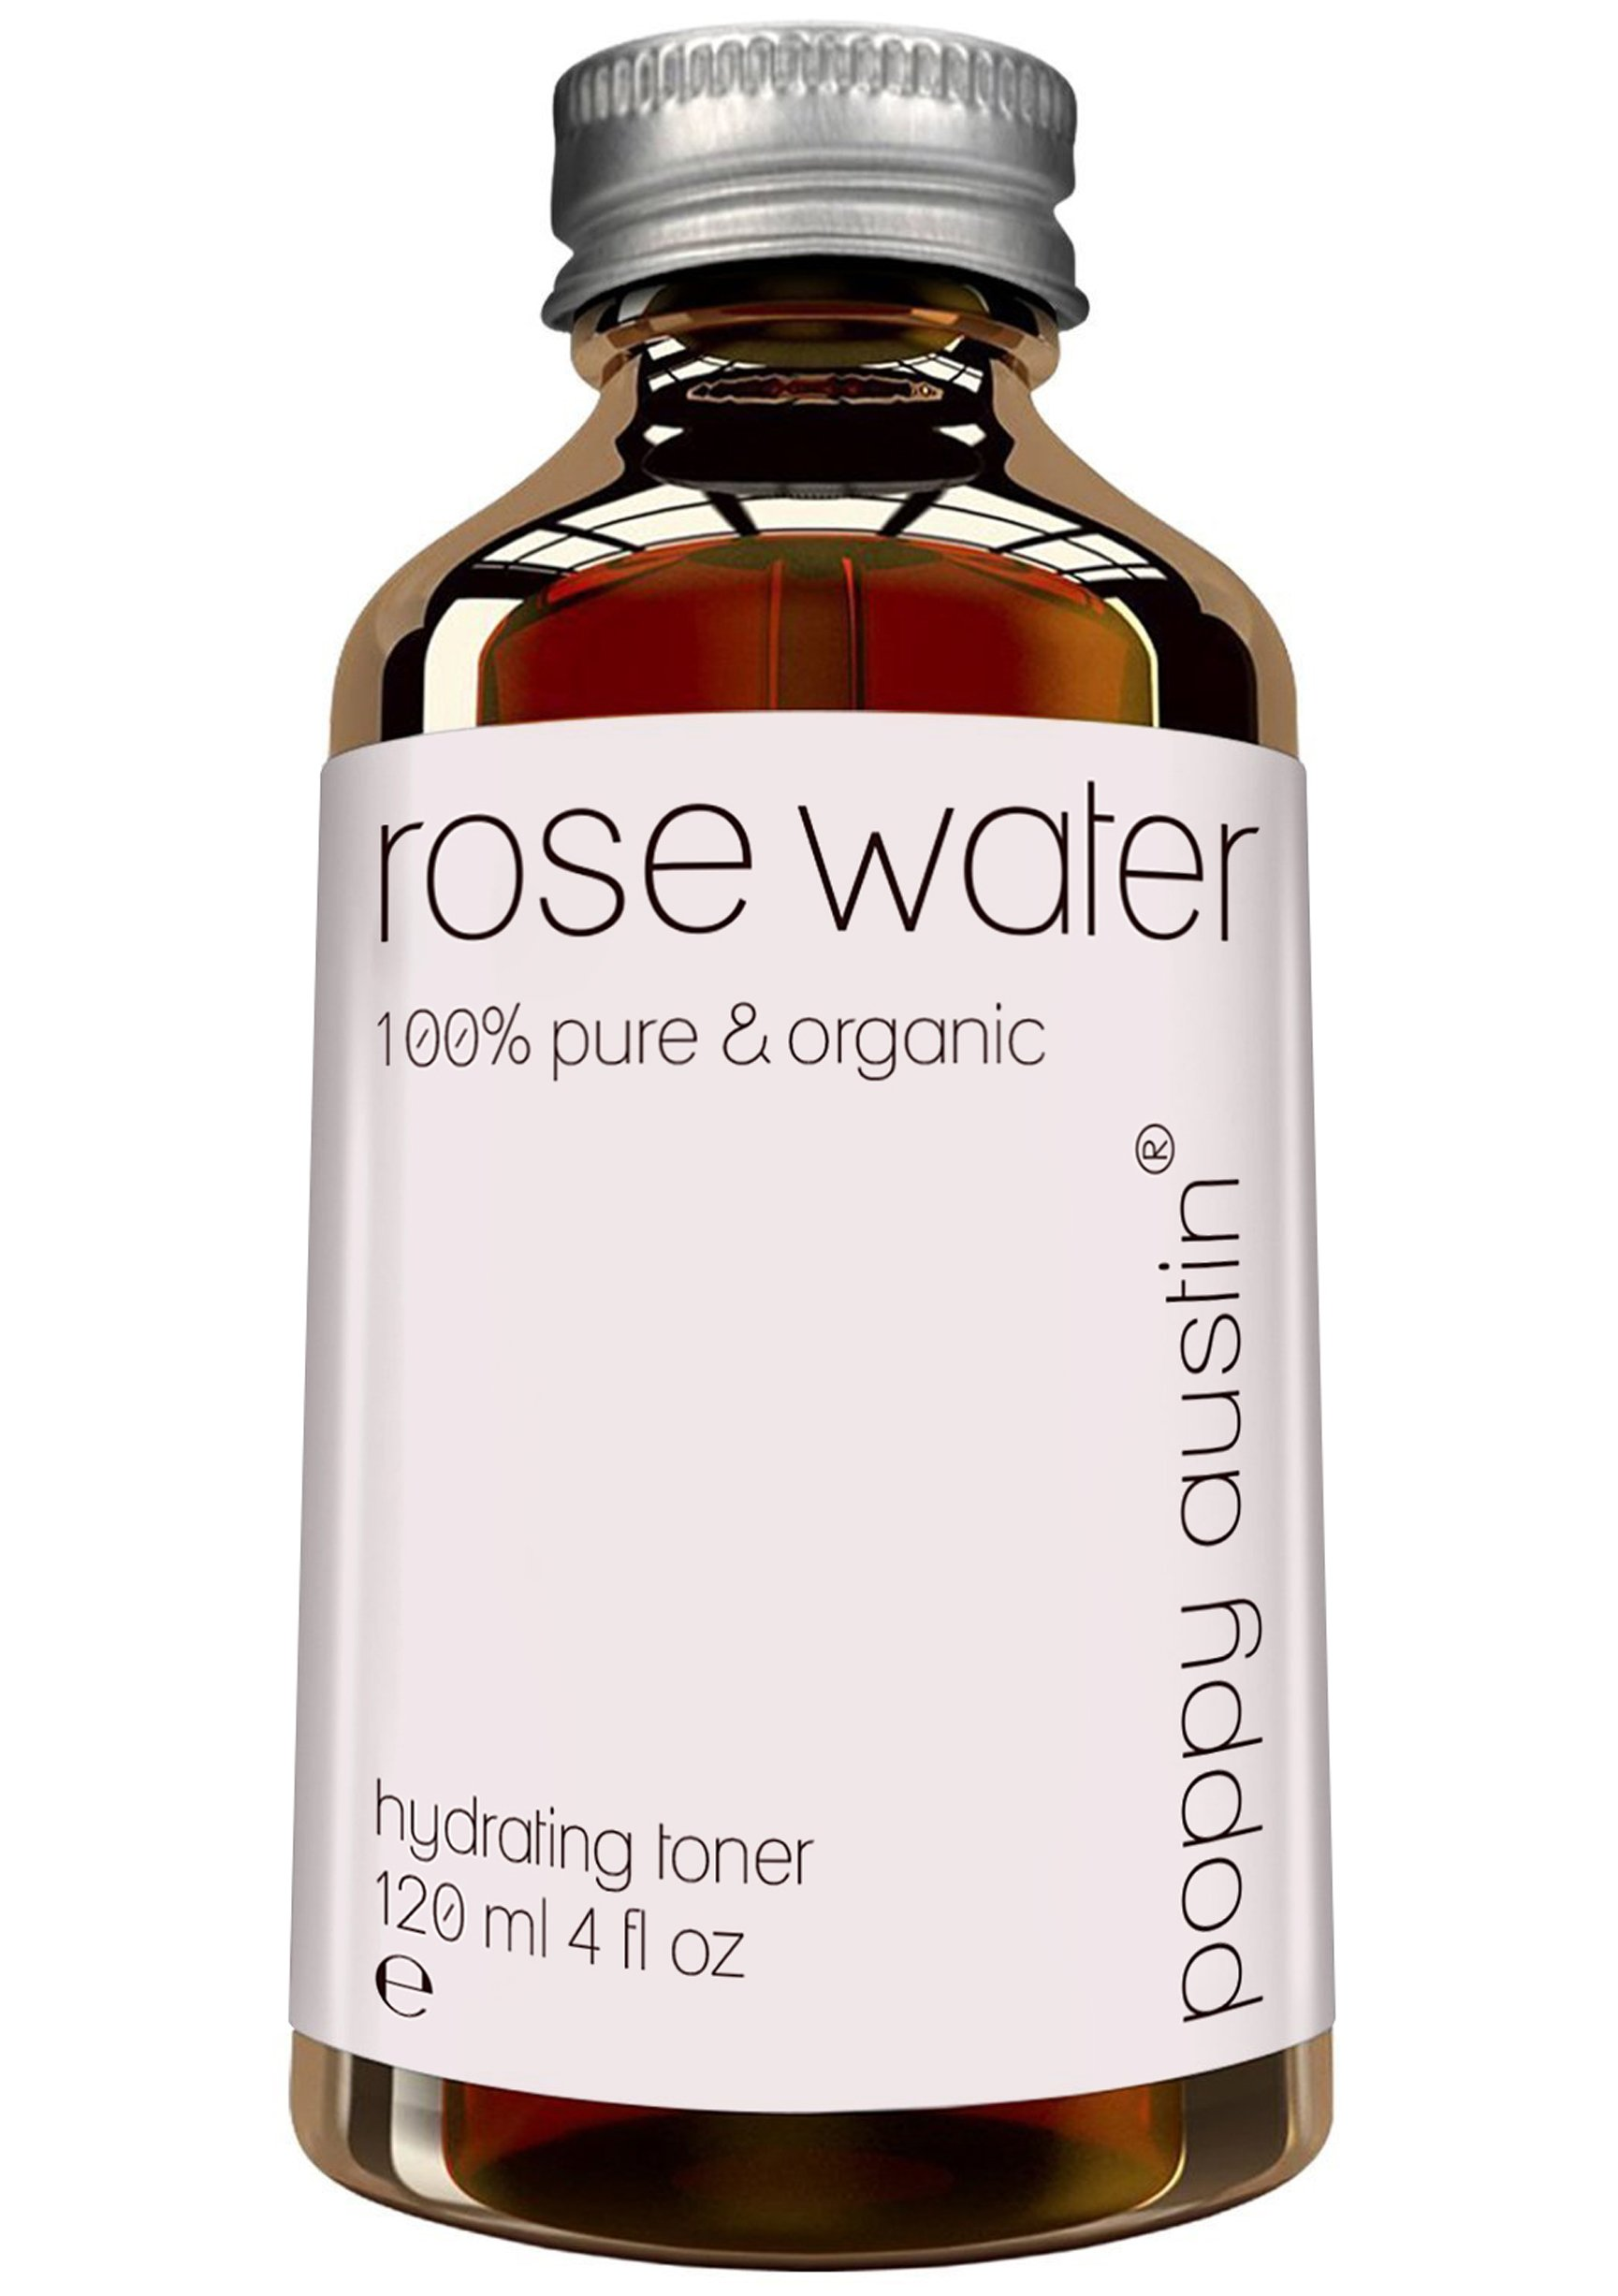 Pure Rose Water Facial Toner by Poppy Austin - Vegan Certified, Cruelty-Free & Organic - Finest, Triple Purified Moroccan Rosewater for Skin, 4 oz by Poppy Austin